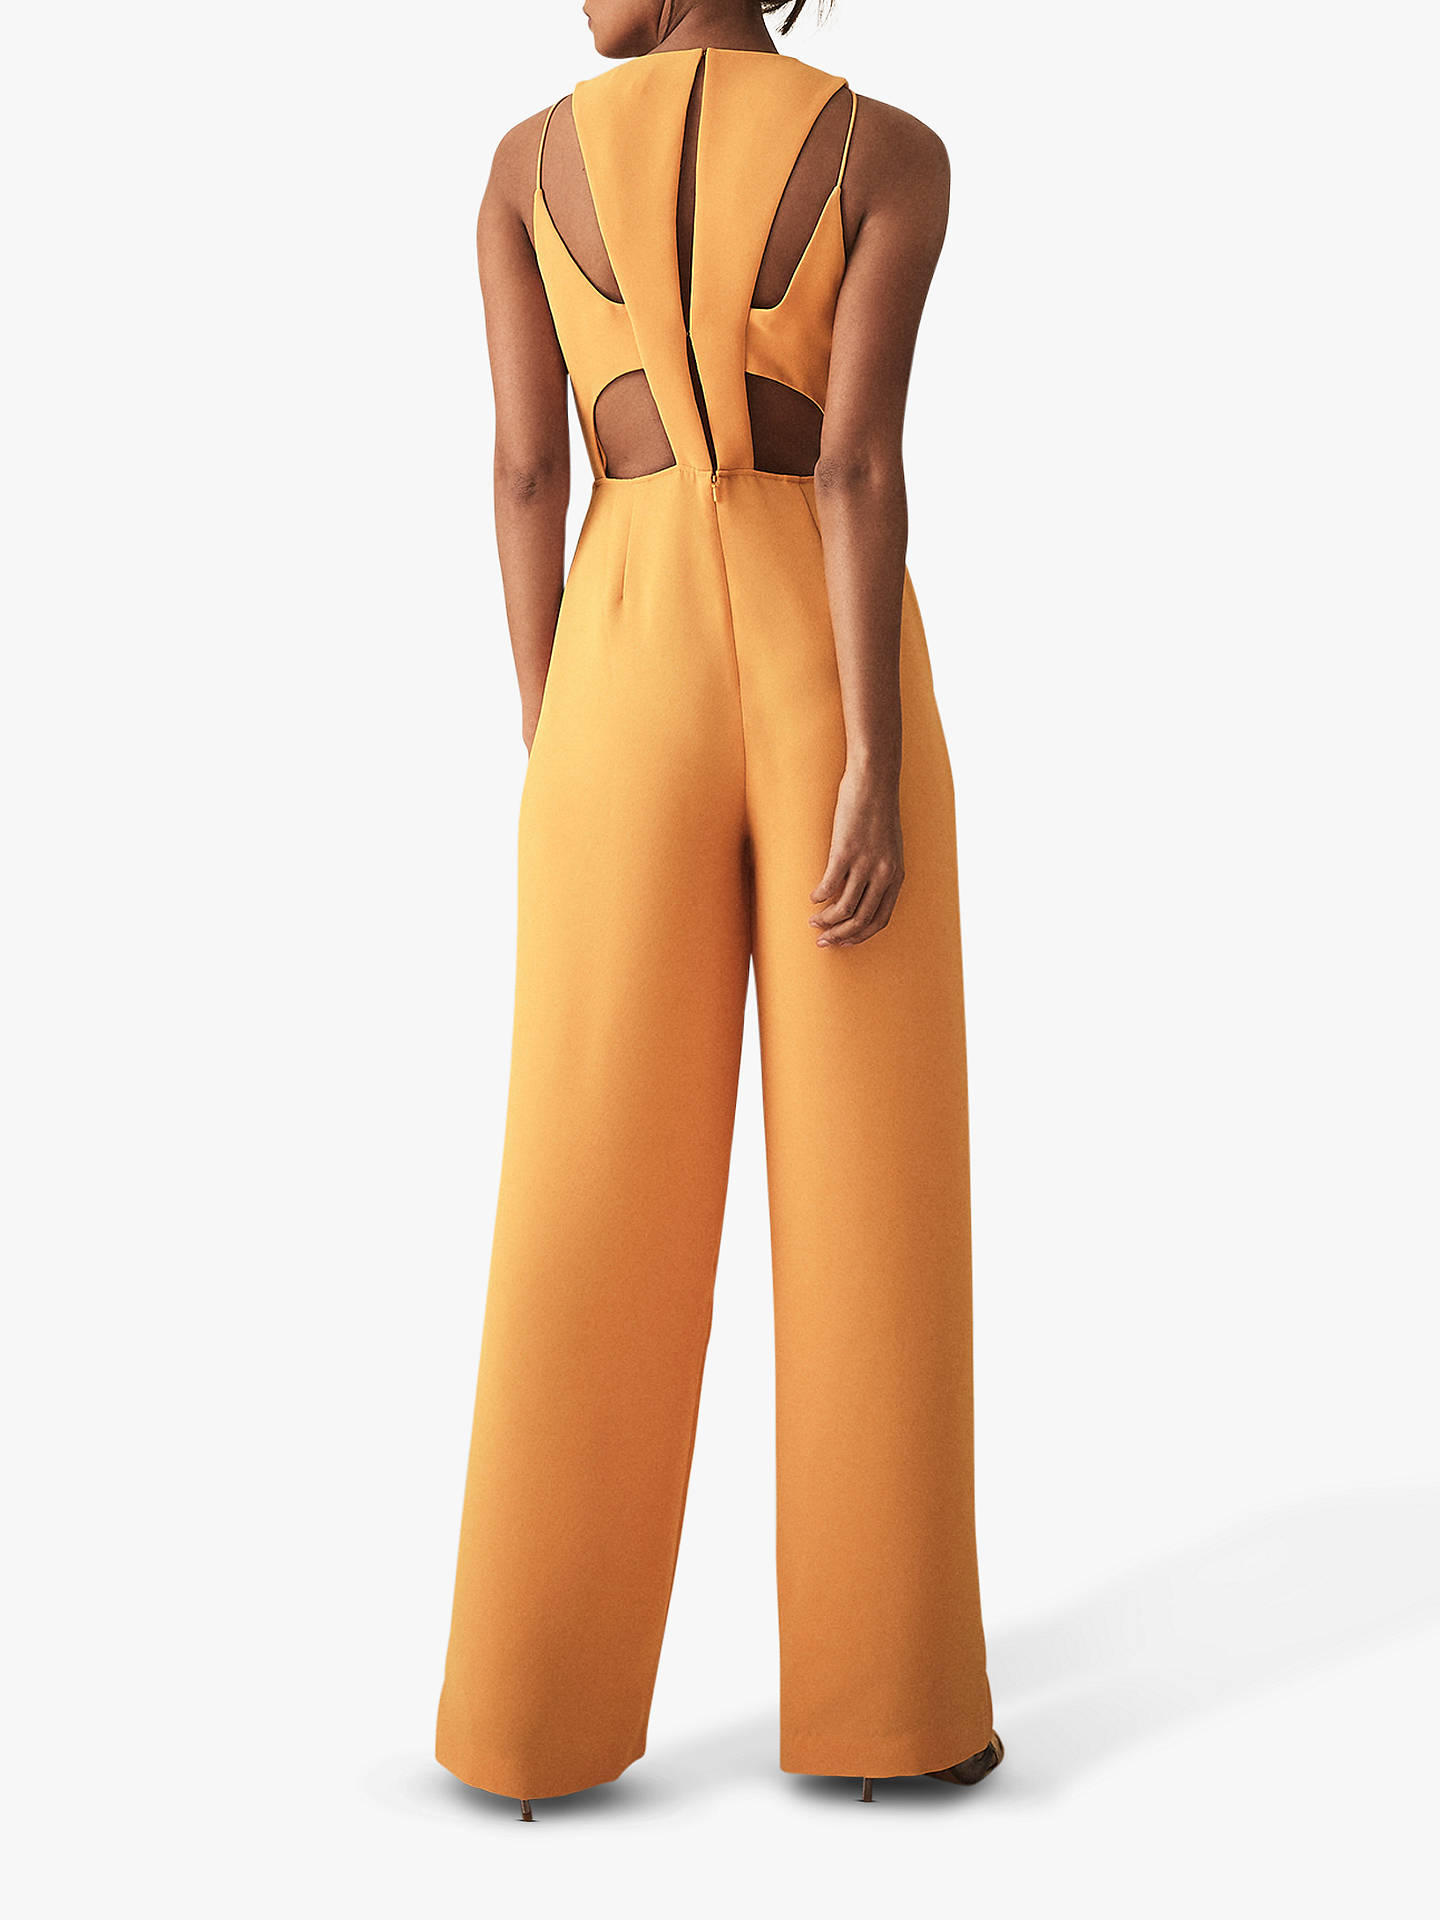 e9779f1bab55 ... Buy Reiss Chey Tie Back Jumpsuit, Orange, 6 Online at johnlewis.com ...